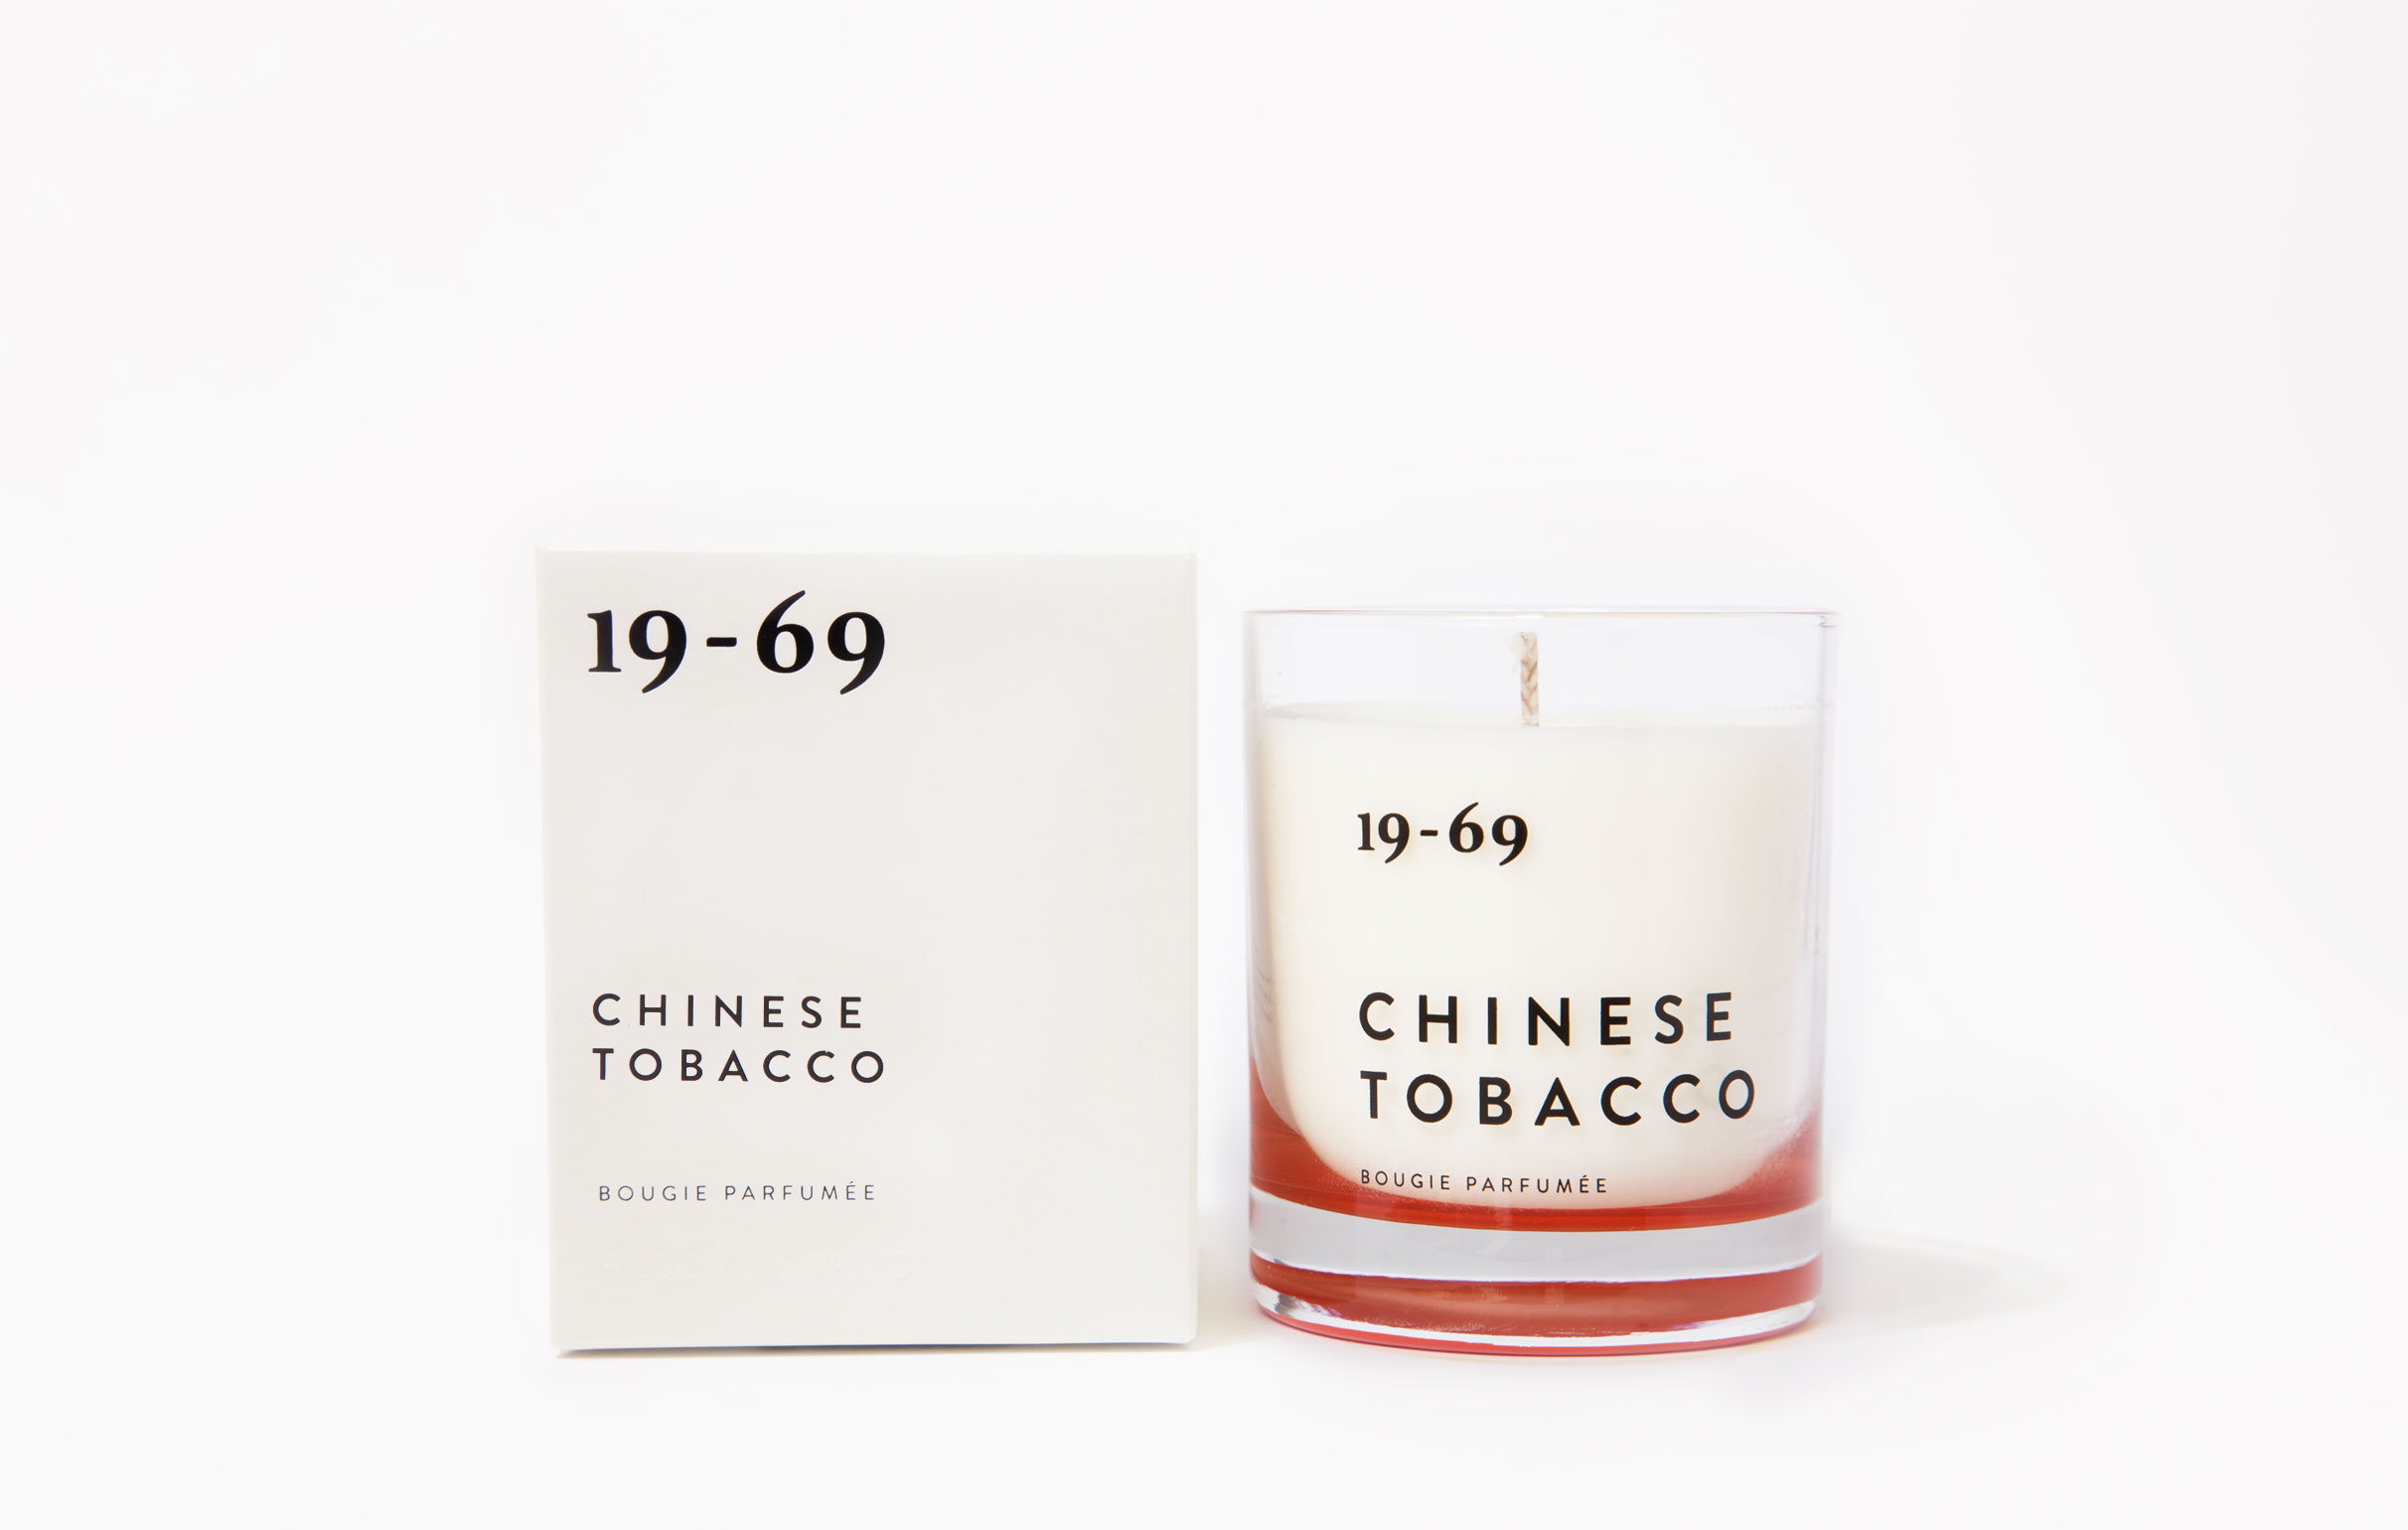 19-69 Chinese Tobacco Bougie Parfumée 200ml